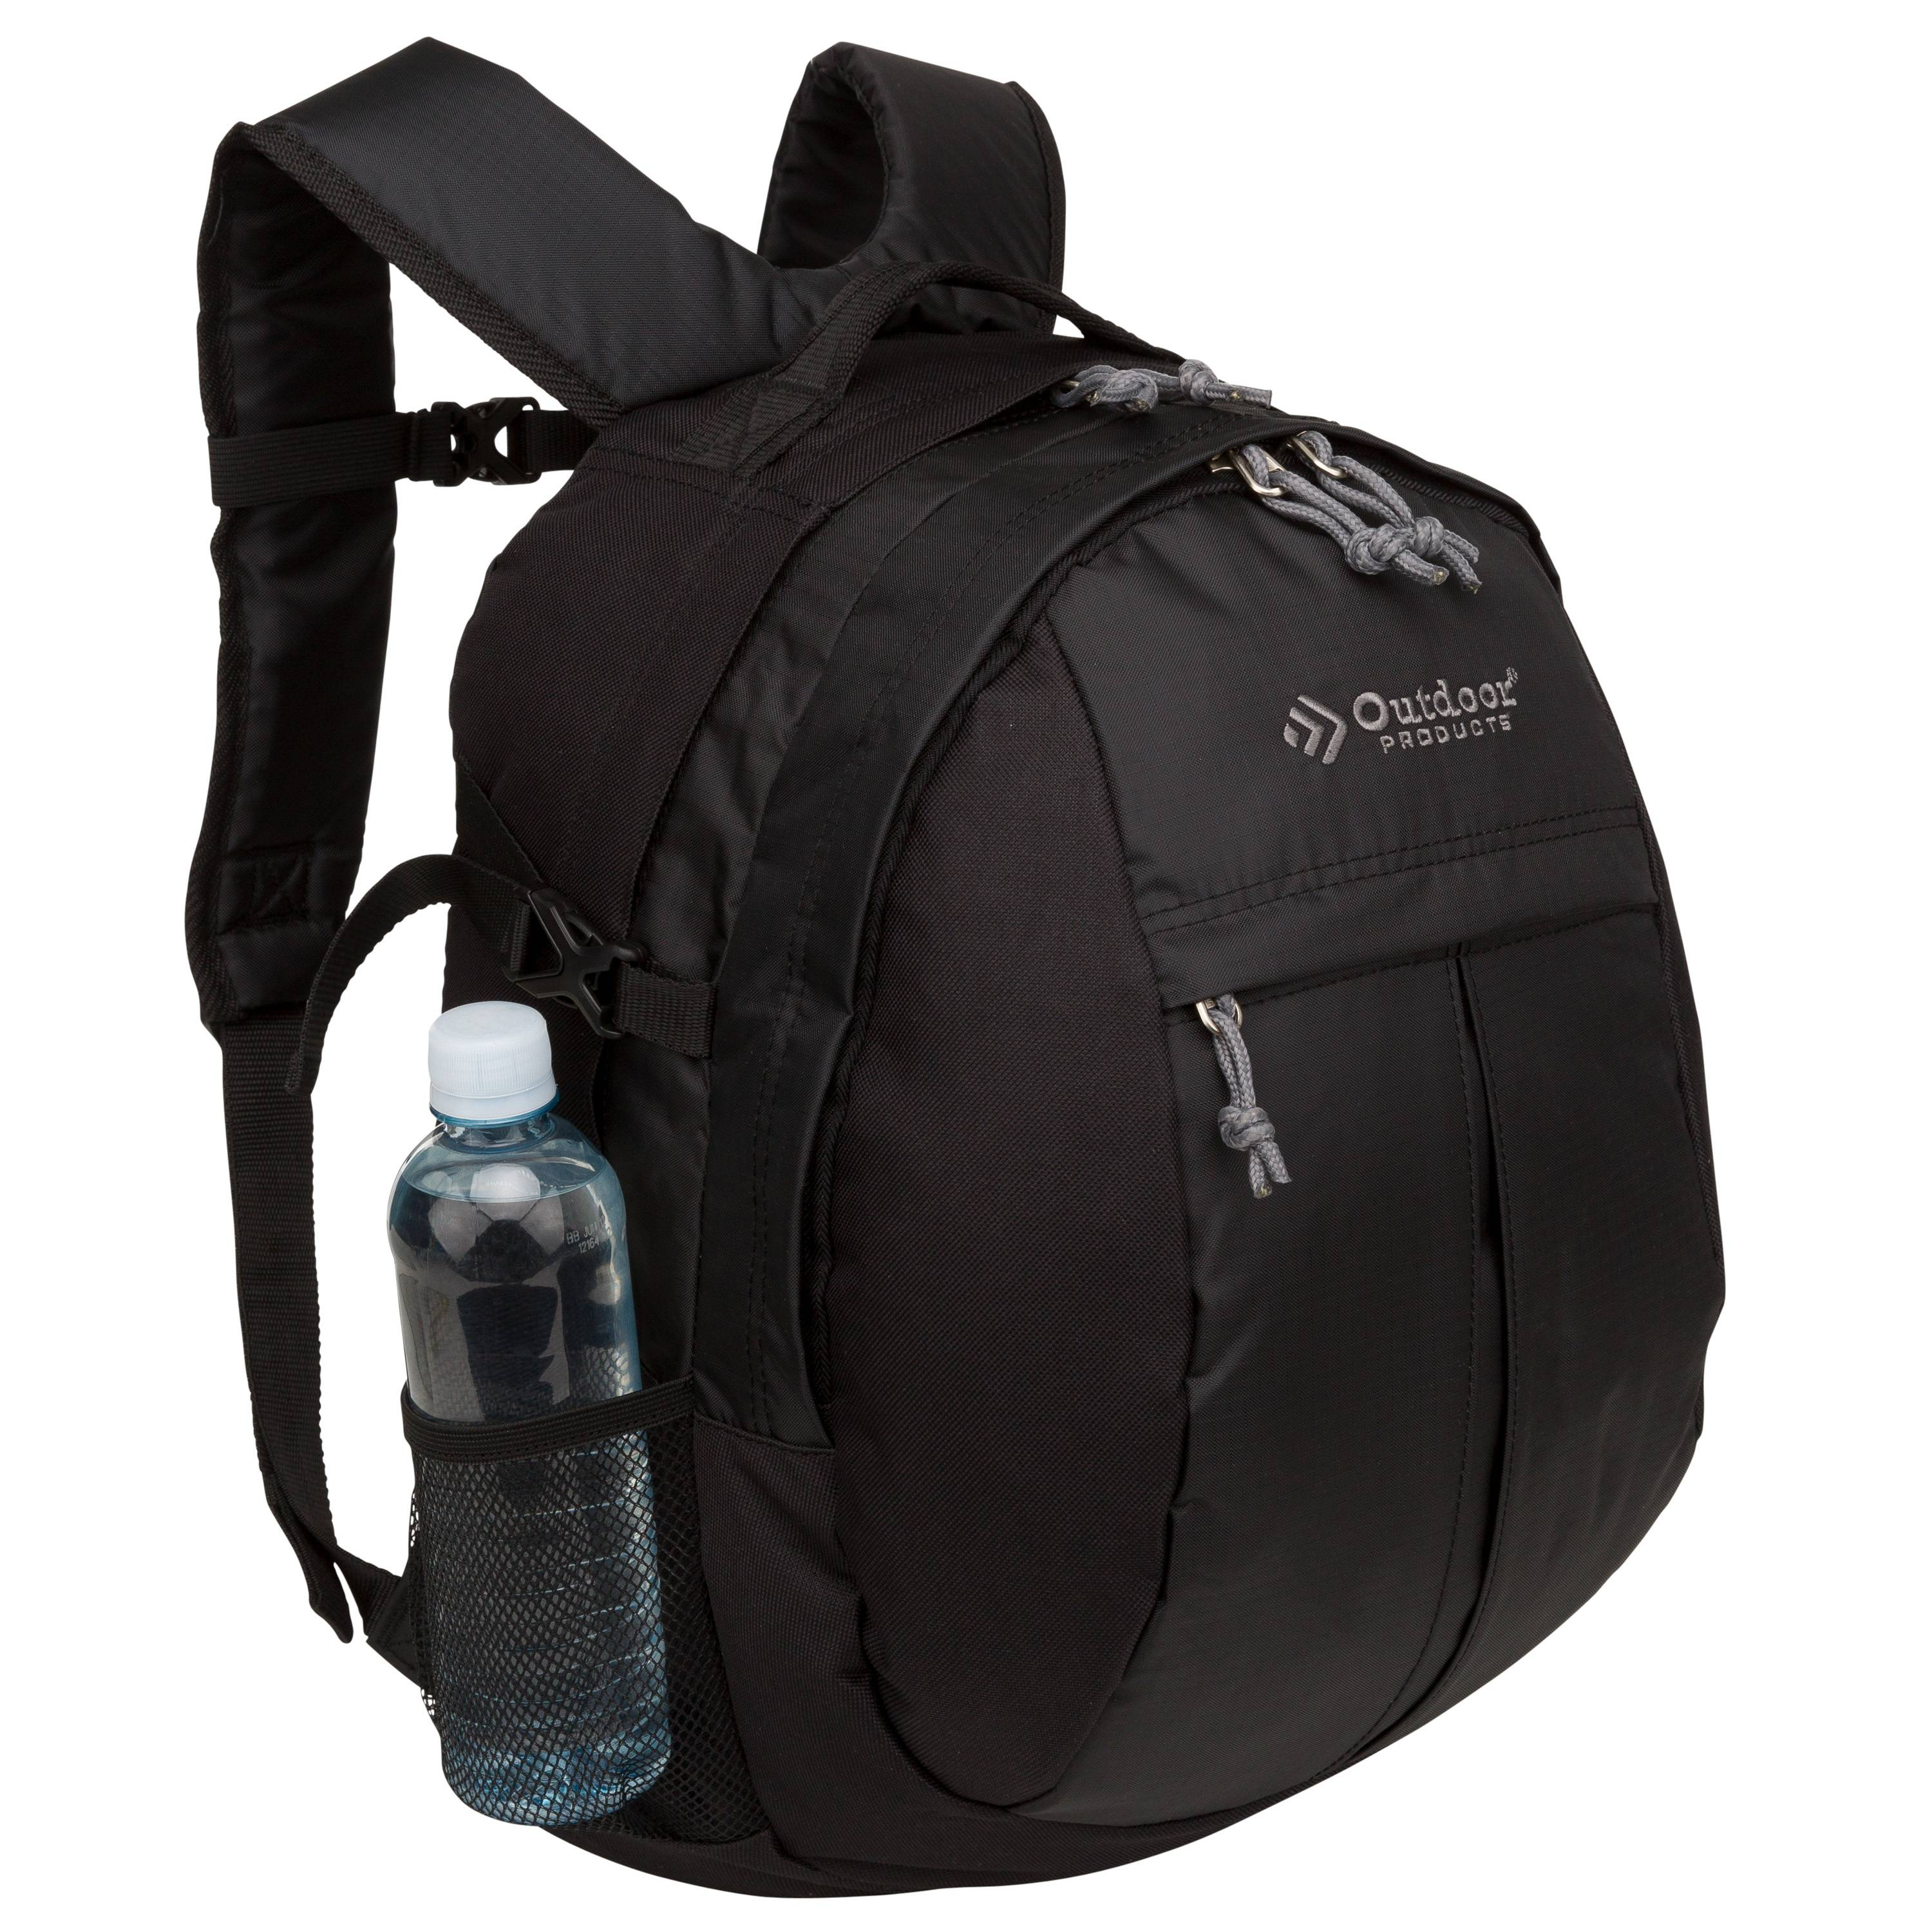 Details about  /Outdoor Products Traverse 25 Ltr Back Pack Blue//Grey Unisex Organizer